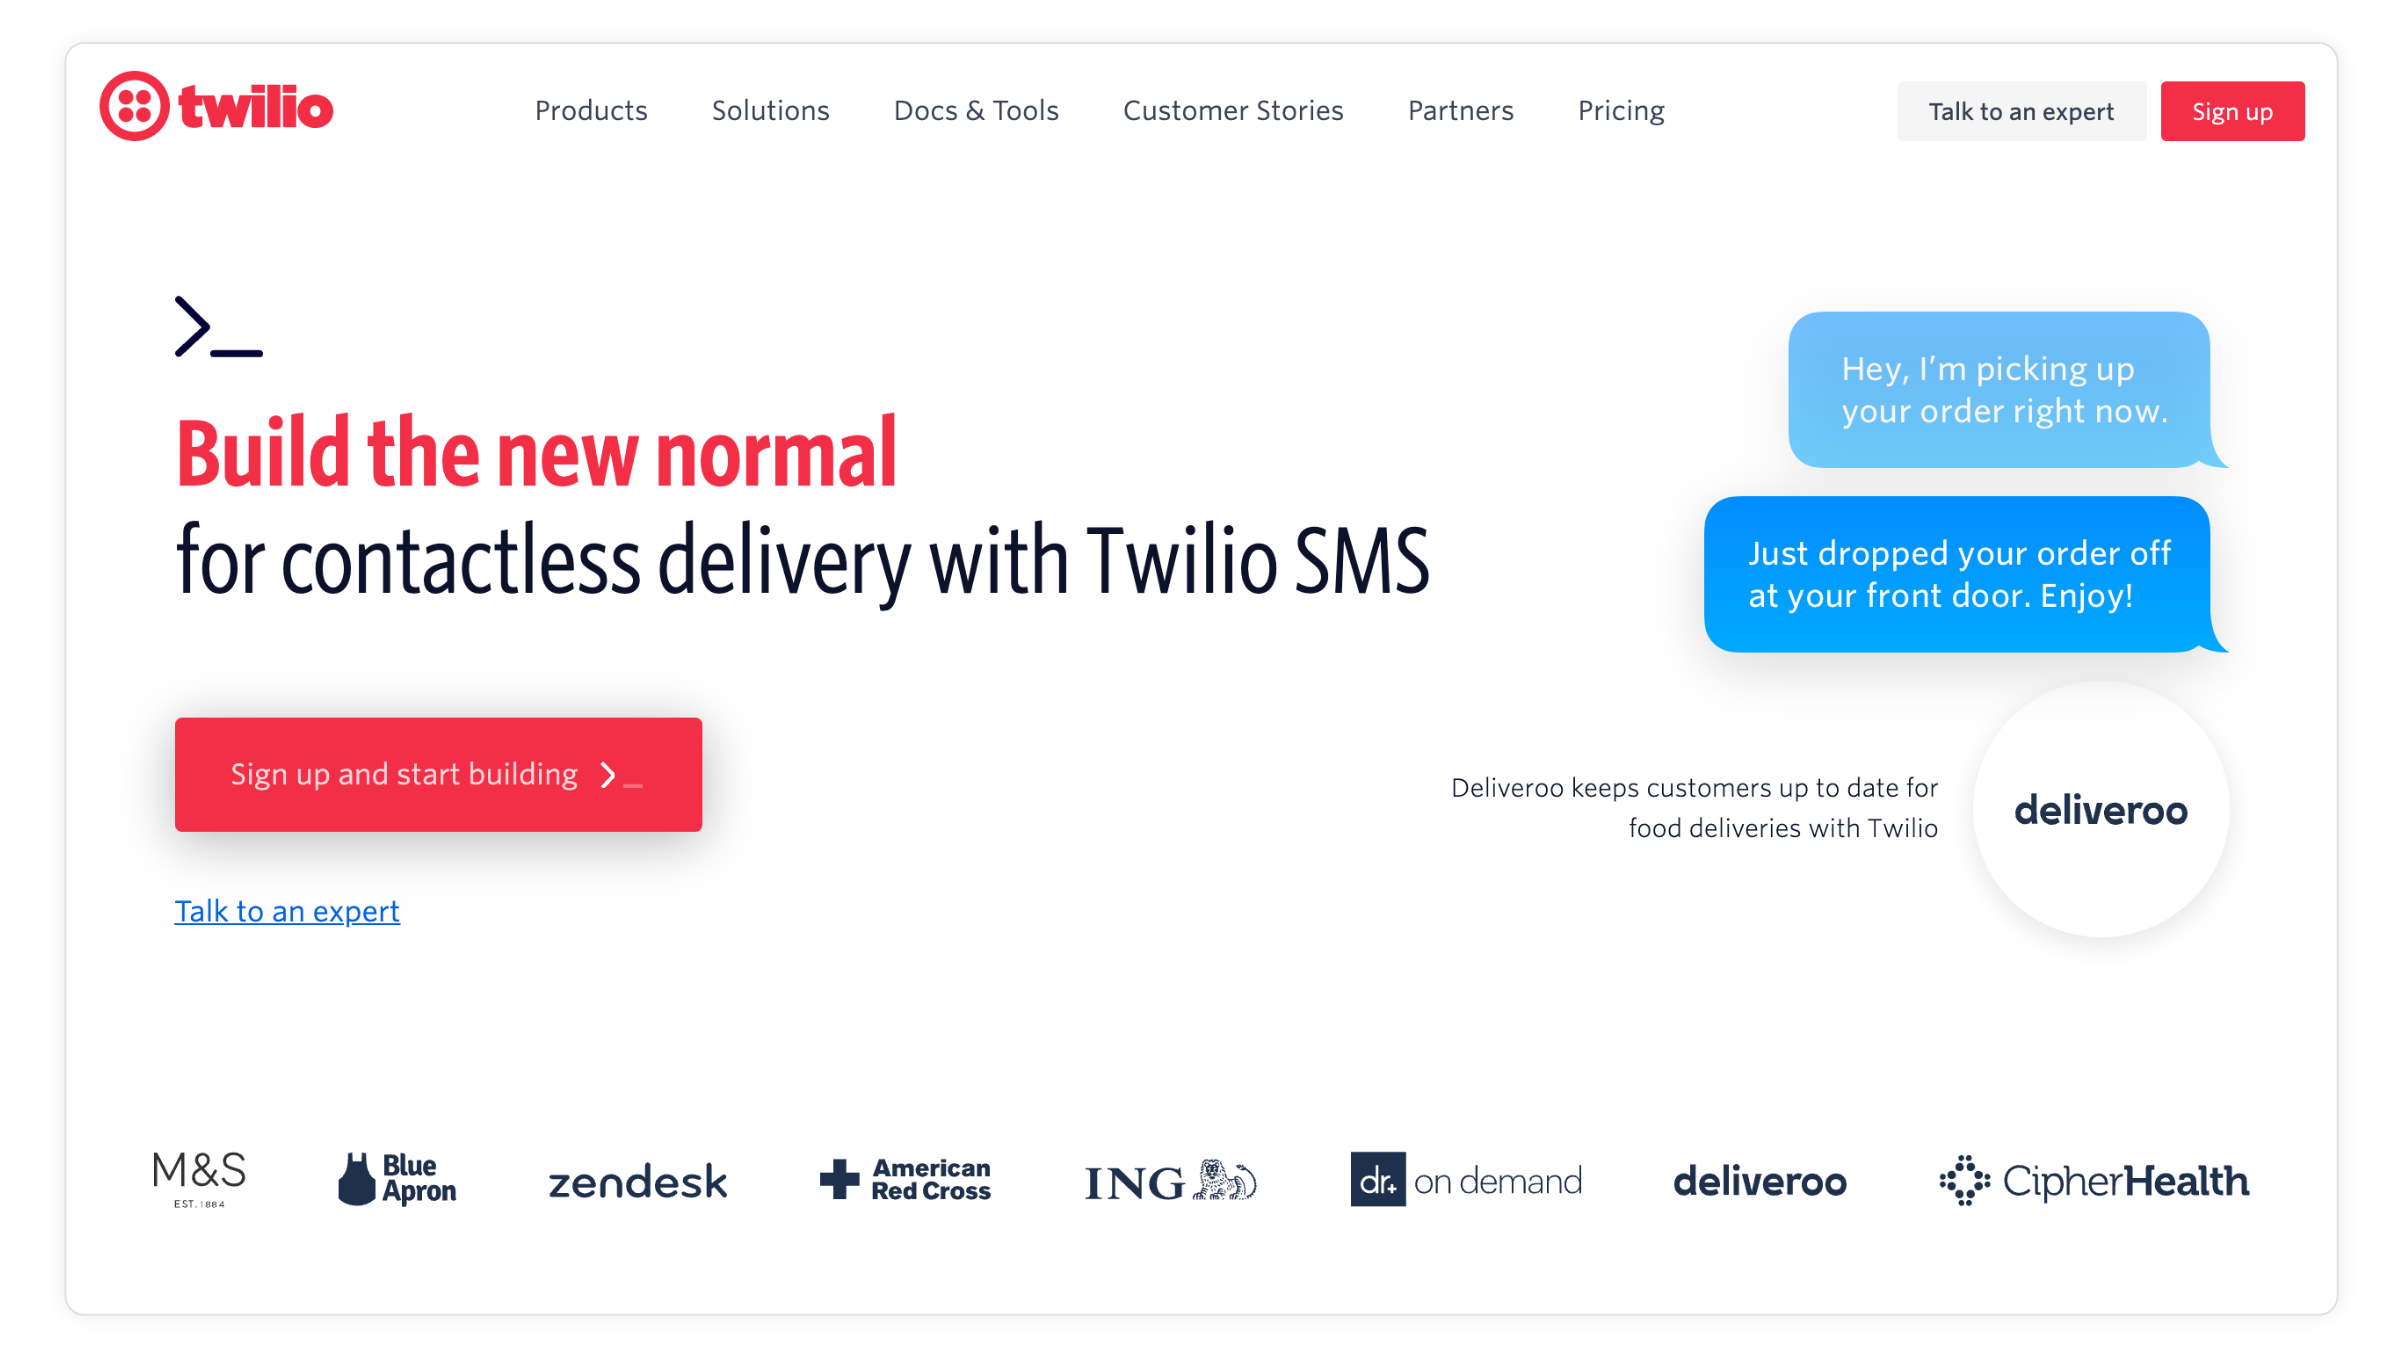 Twilio helps companies connect with customers in the new normal